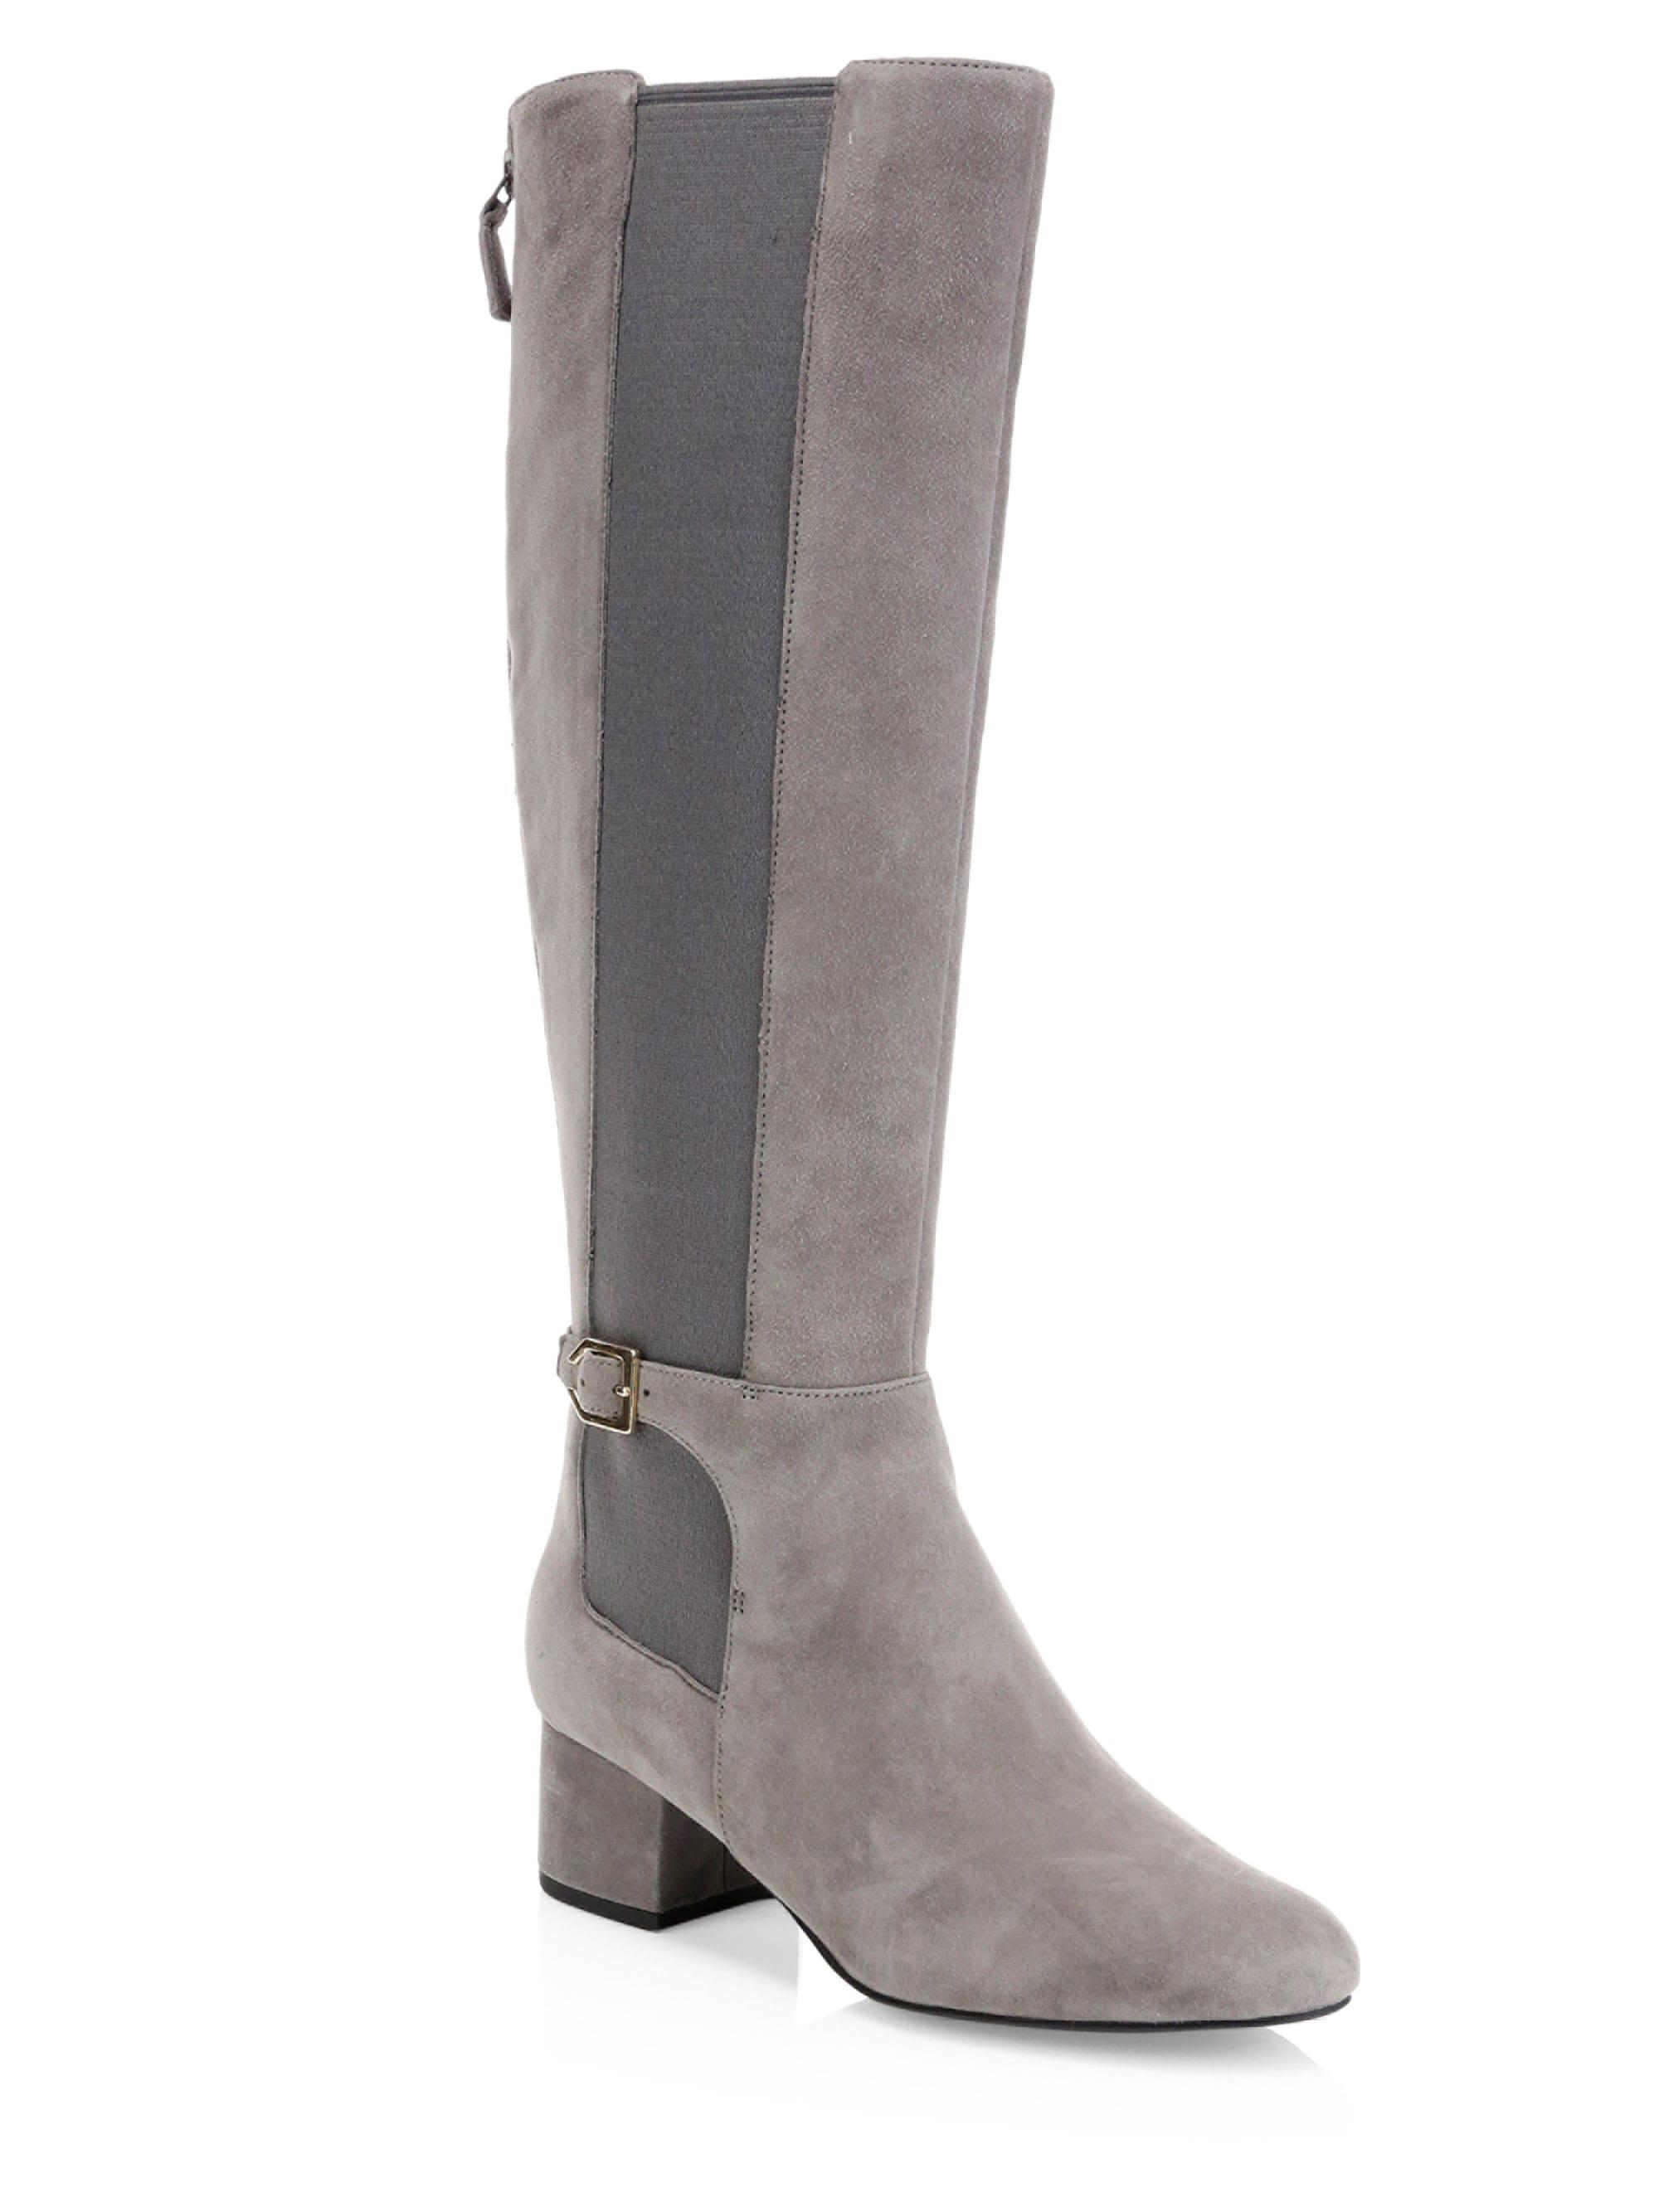 a17af47c389 Cole Haan Avani Leather Stretch Boots in Gray - Lyst